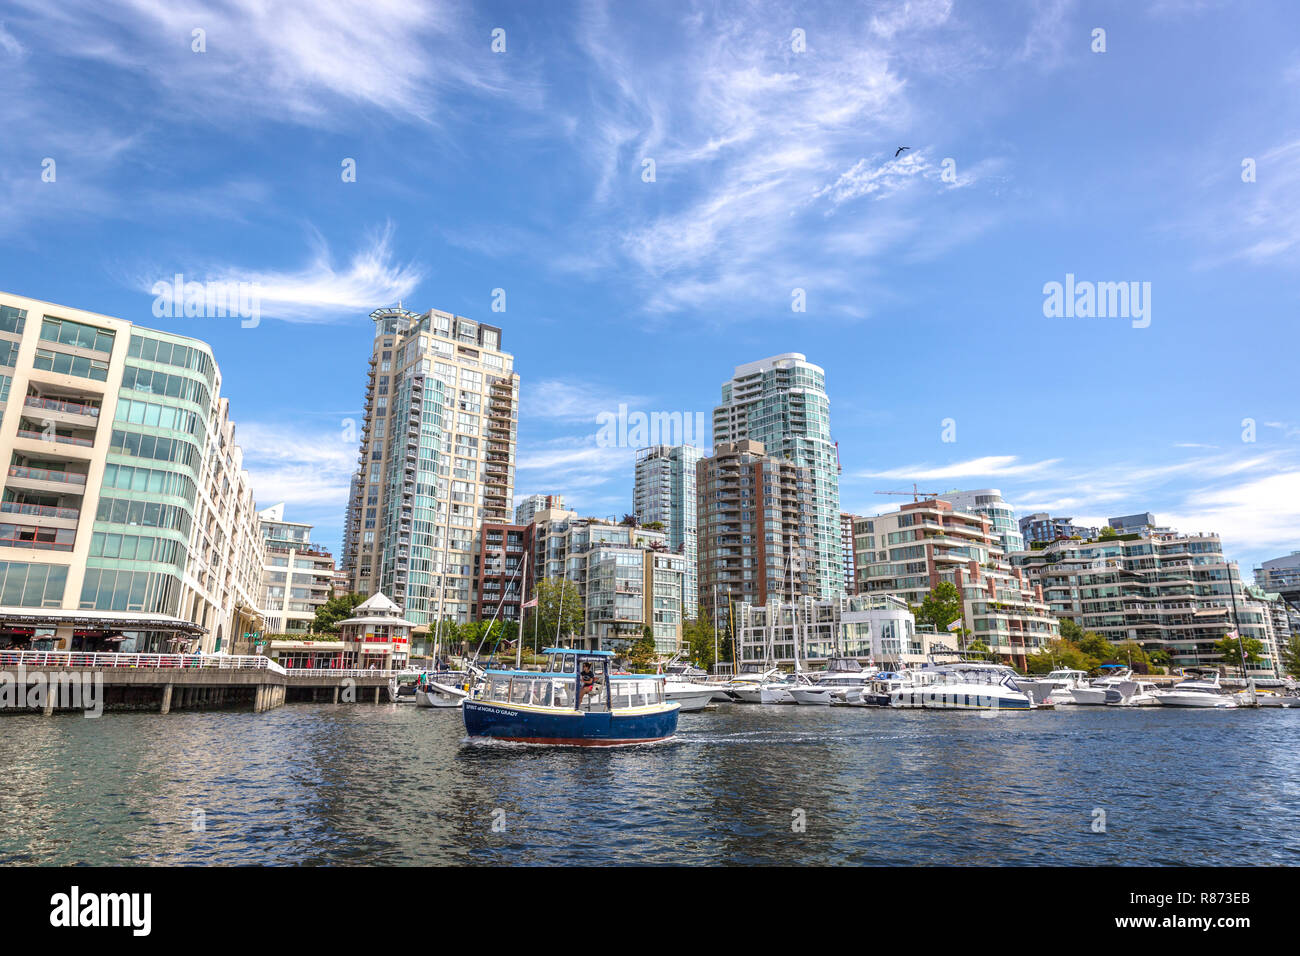 Vancouver, Canada - Set 20th 2017 - Plenty of boats in front of buildings in Vancouver during a blue sky day in Canada Stock Photo